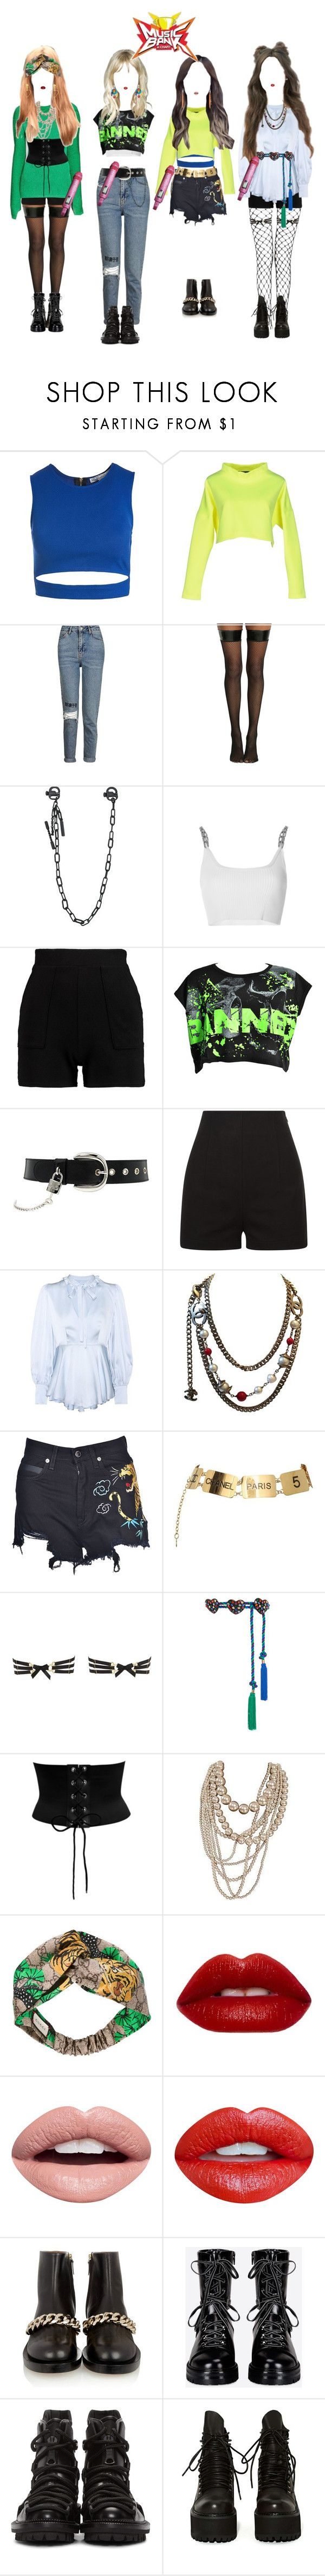 """""""《Music Bank》WAR OF HEARTS {WOH}"""" by bittersweet-official ❤ liked on Polyvore featuring Sans Souci, Philipp Plein, Topshop, Hot Topic, Dsquared2, Alexander Wang, D&G, La Perla, AlexaChung and Chanel"""